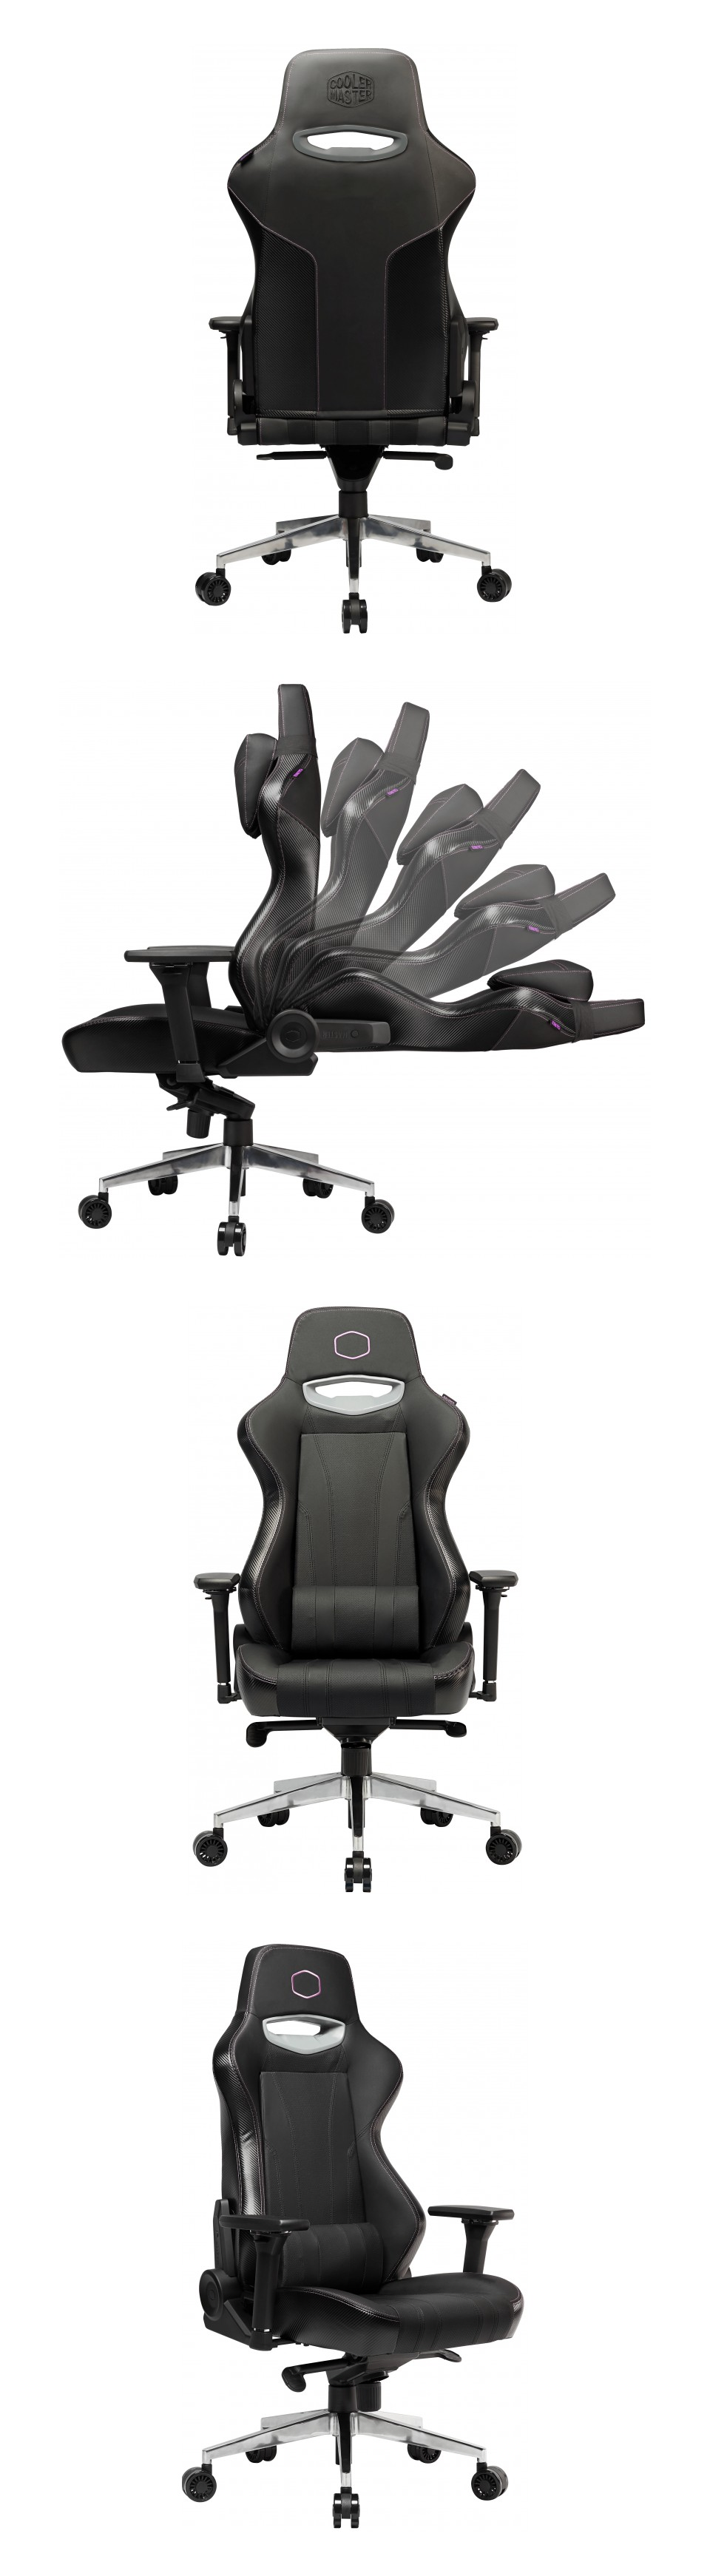 Cooler Master Caliber X1 Gaming Chair product